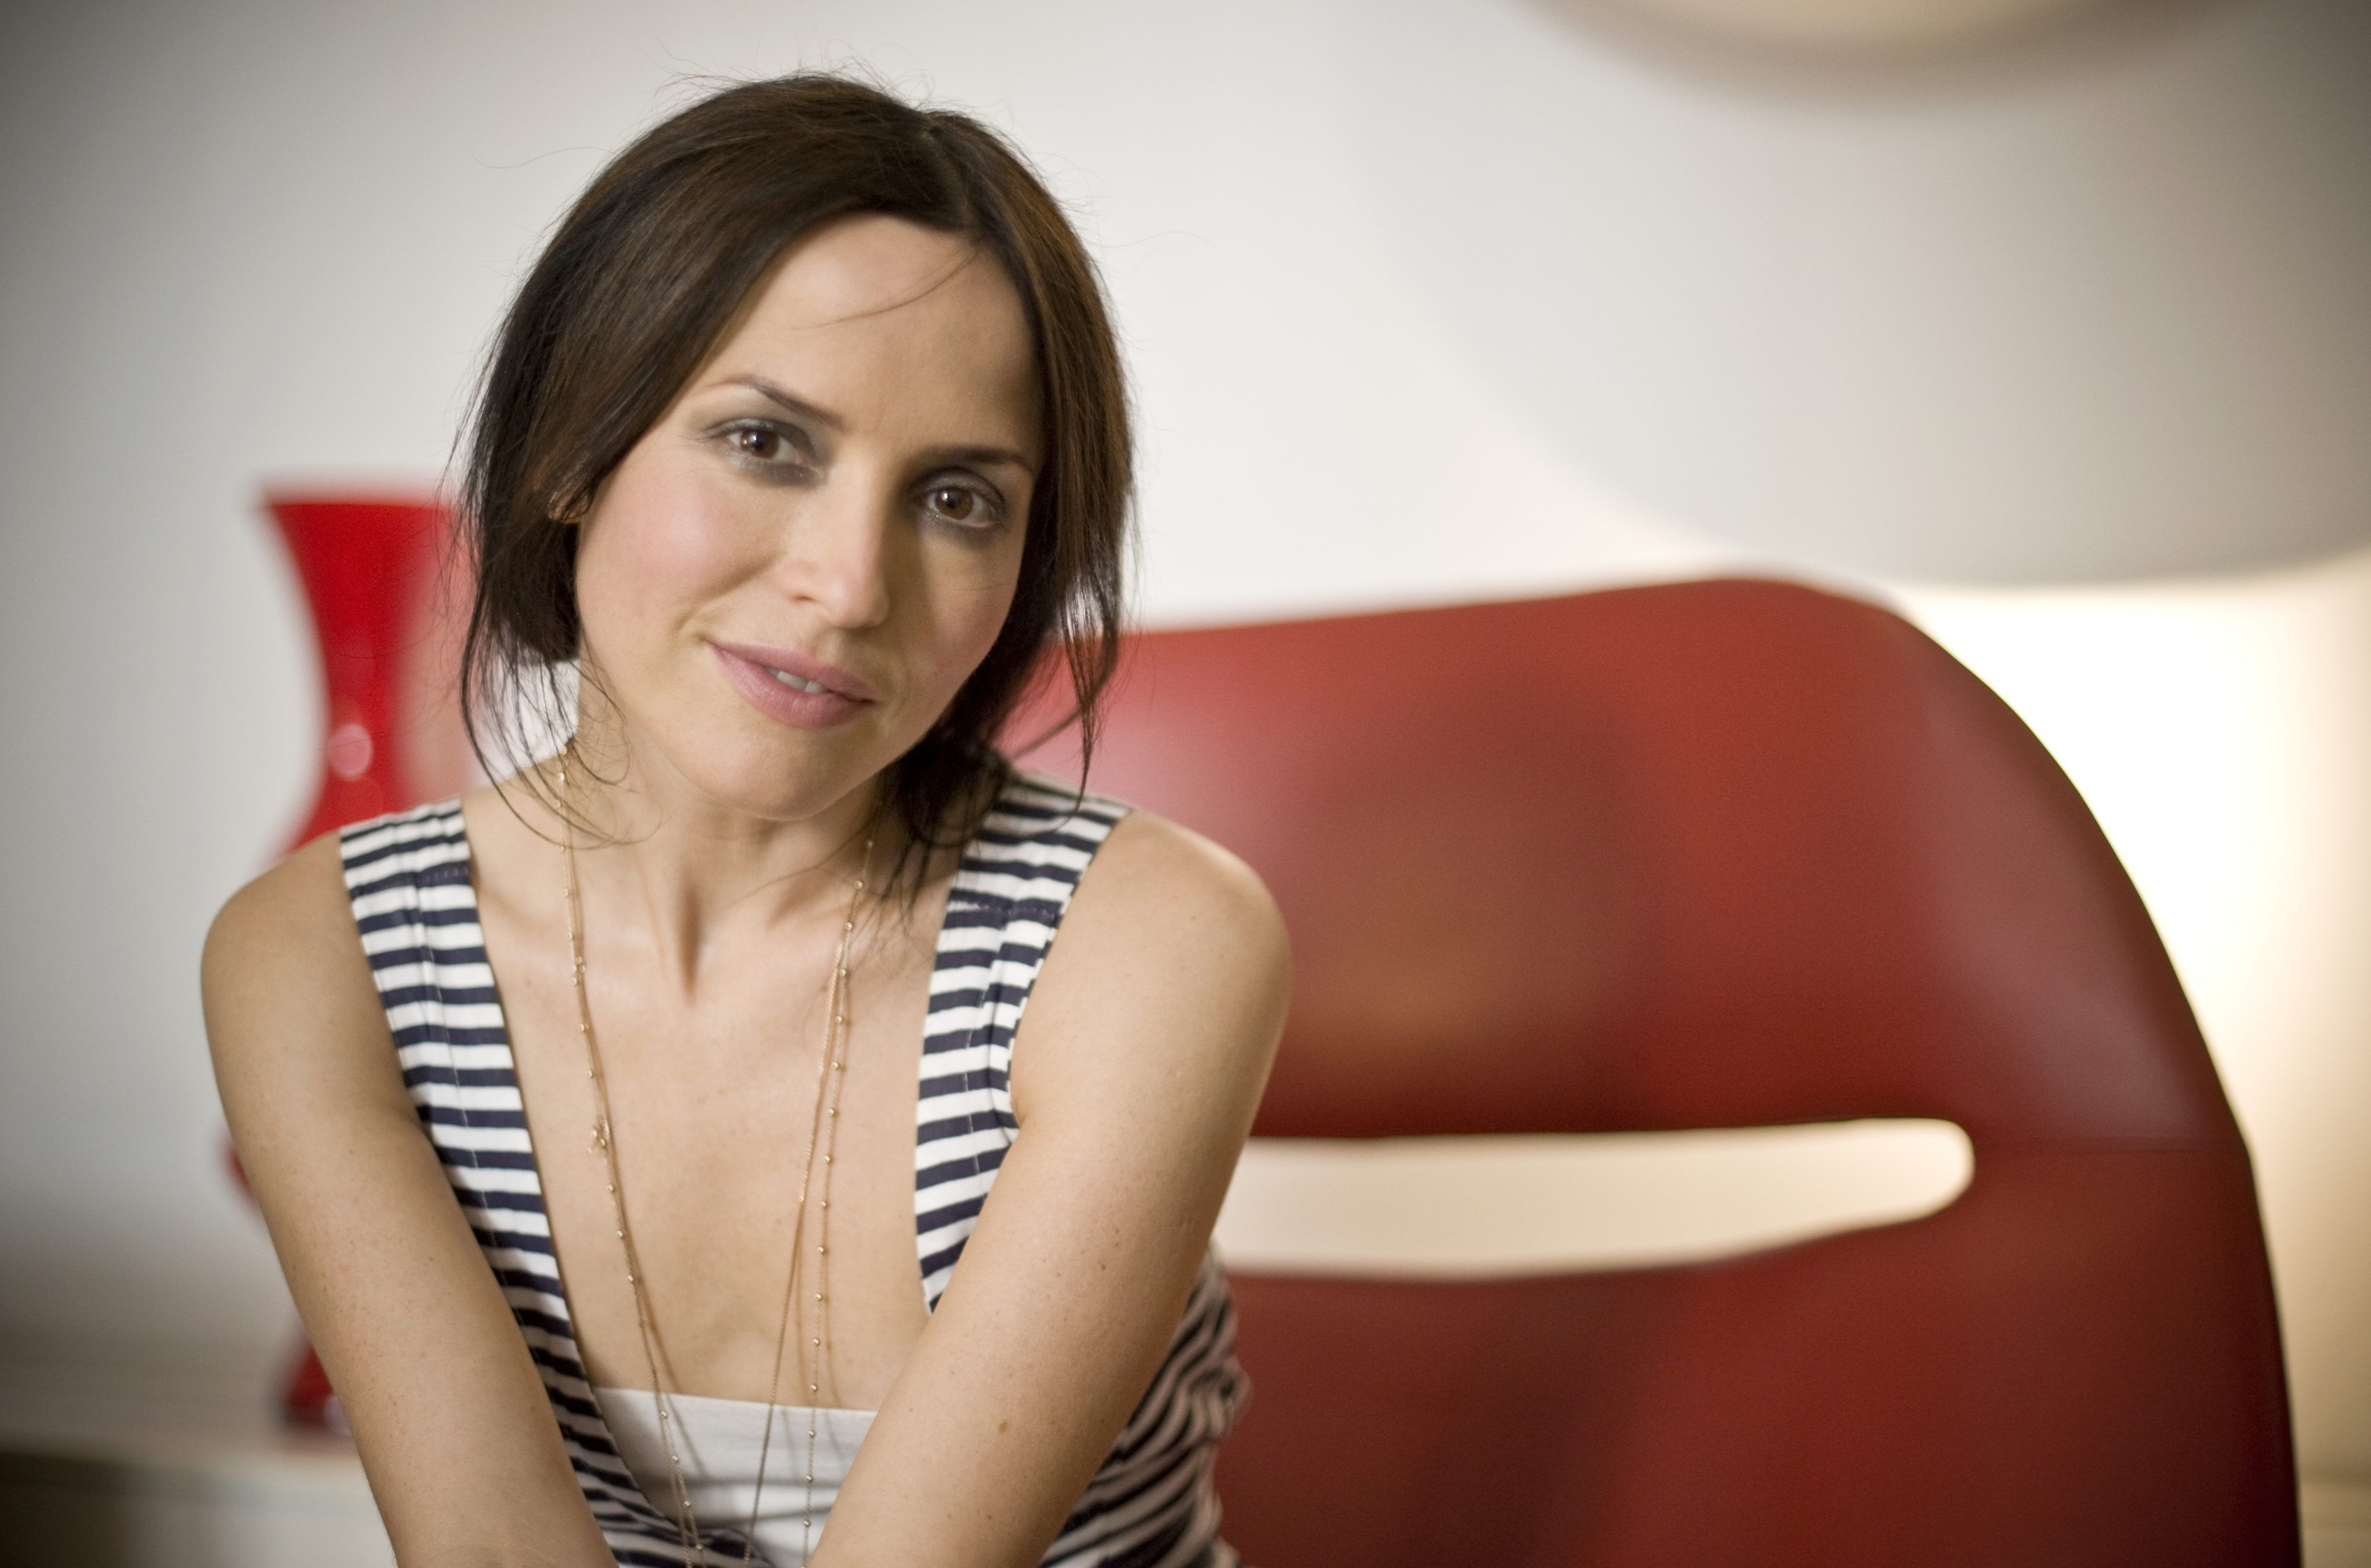 Andrea Corr High Definition Wallpapers